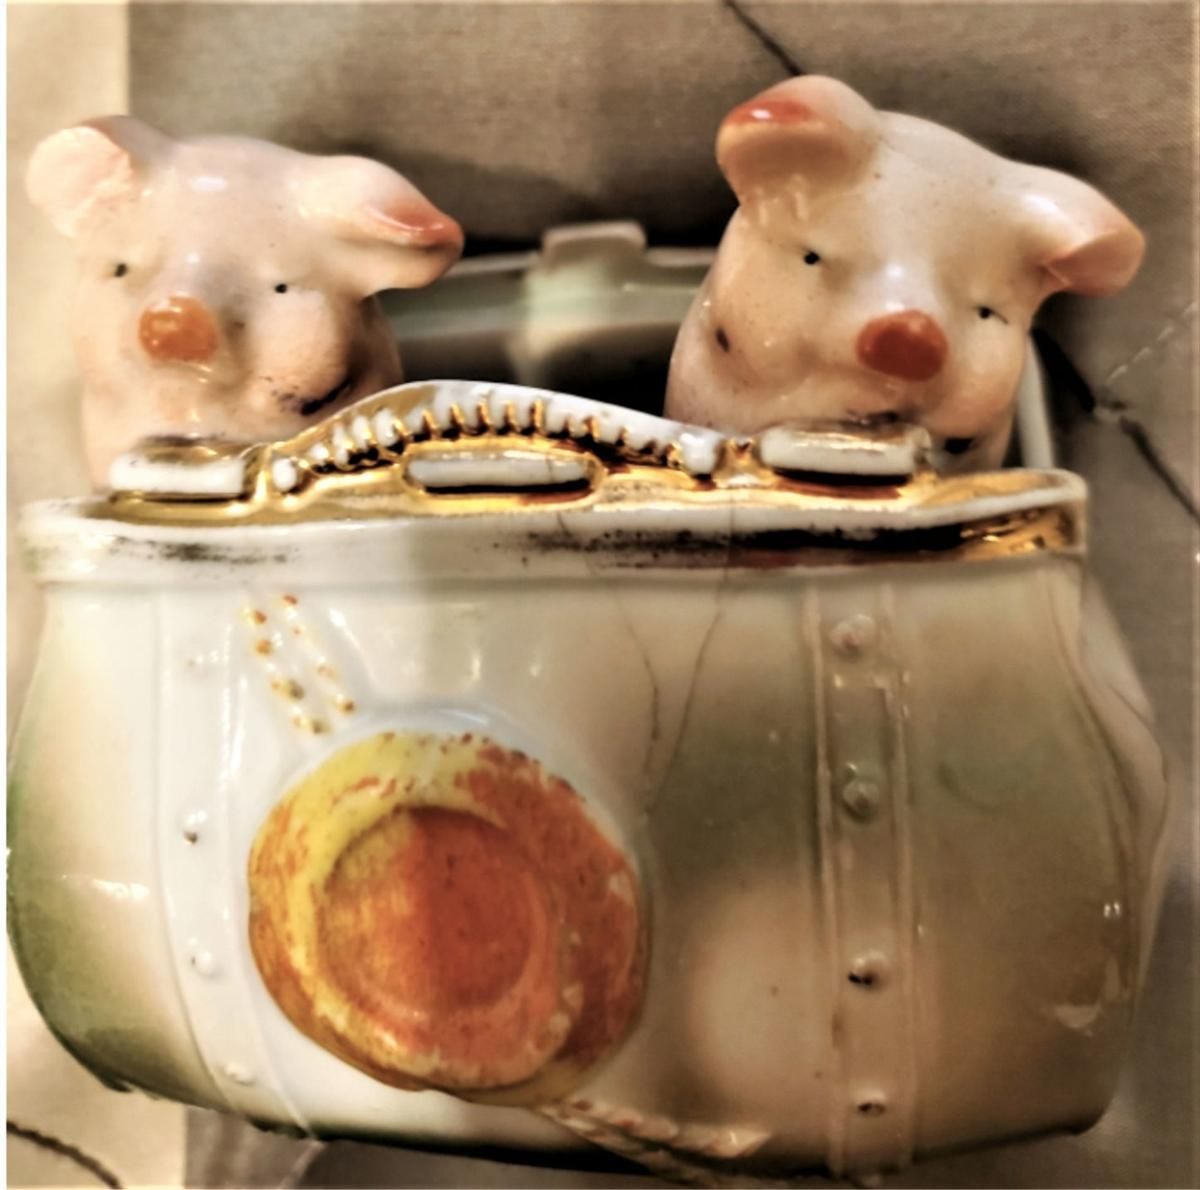 Porcelain pink pigs are cute but common